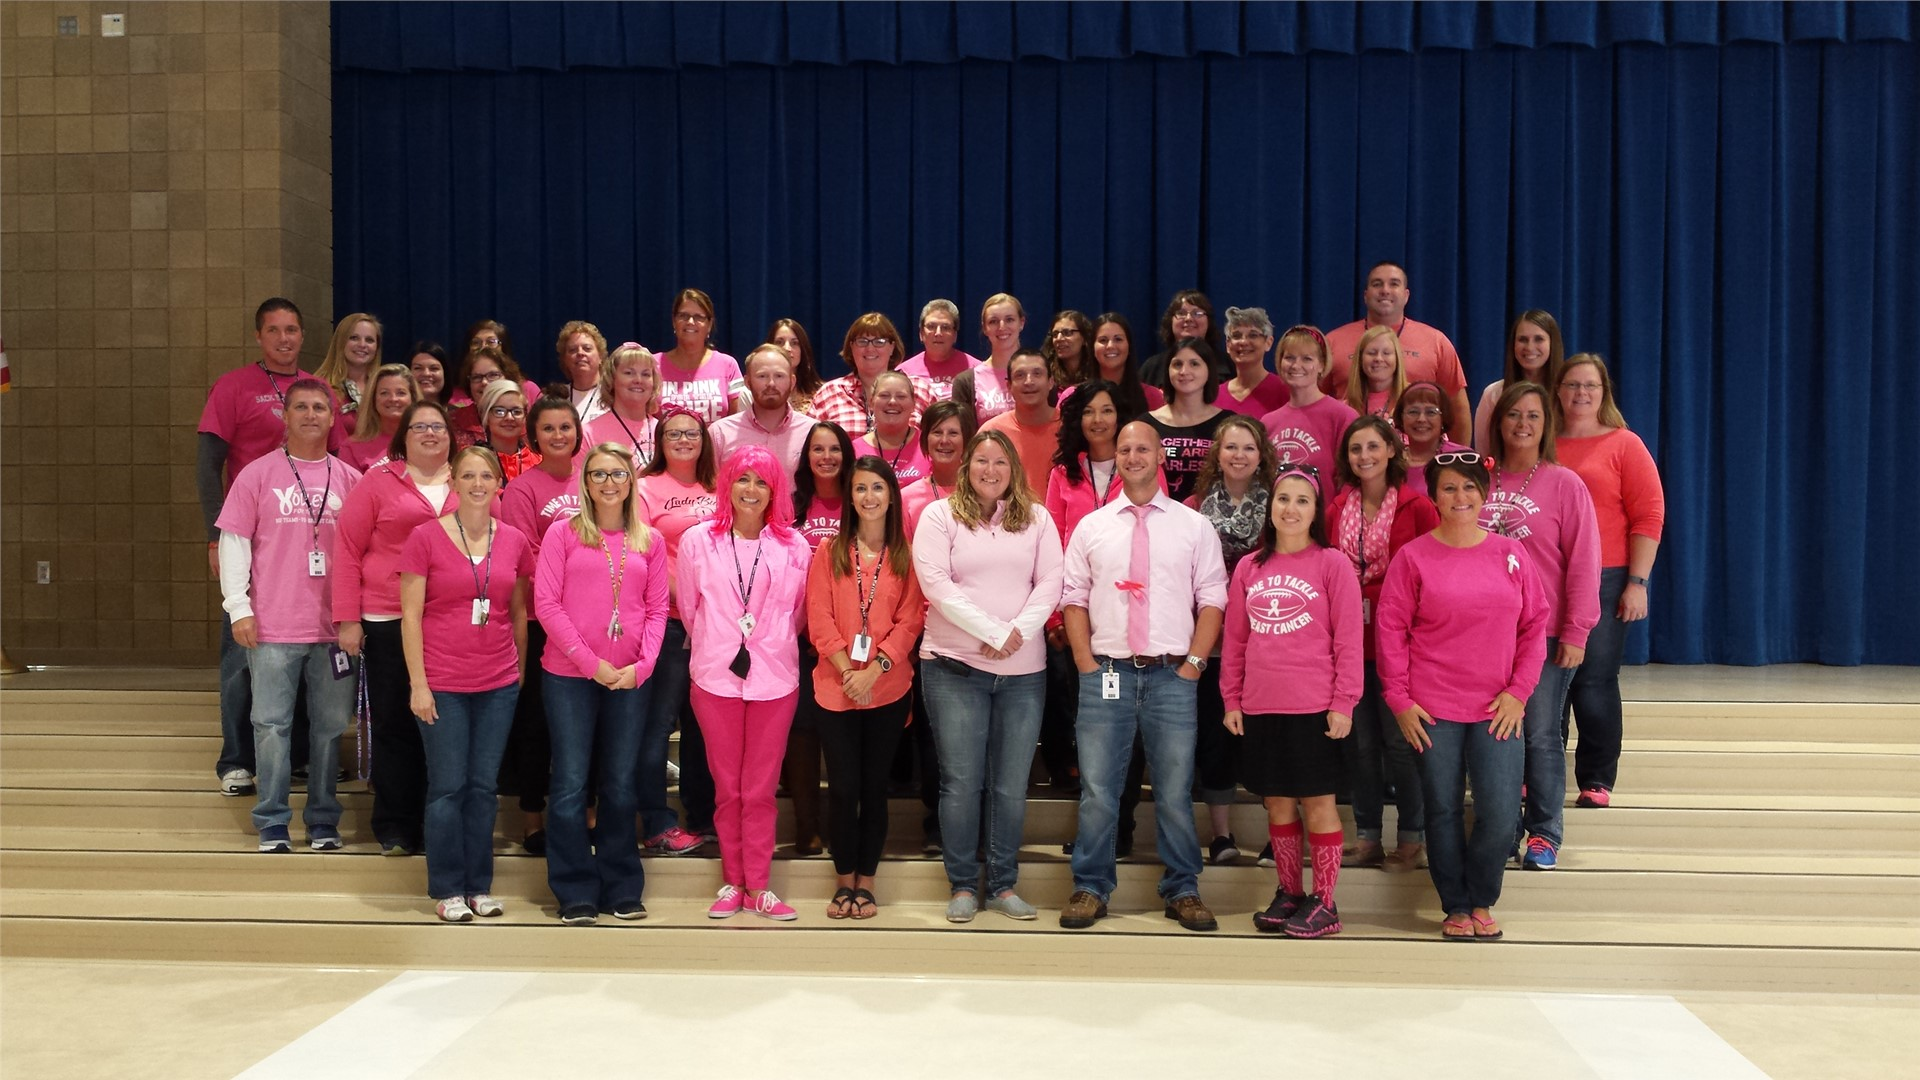 Wear pink for cancer support